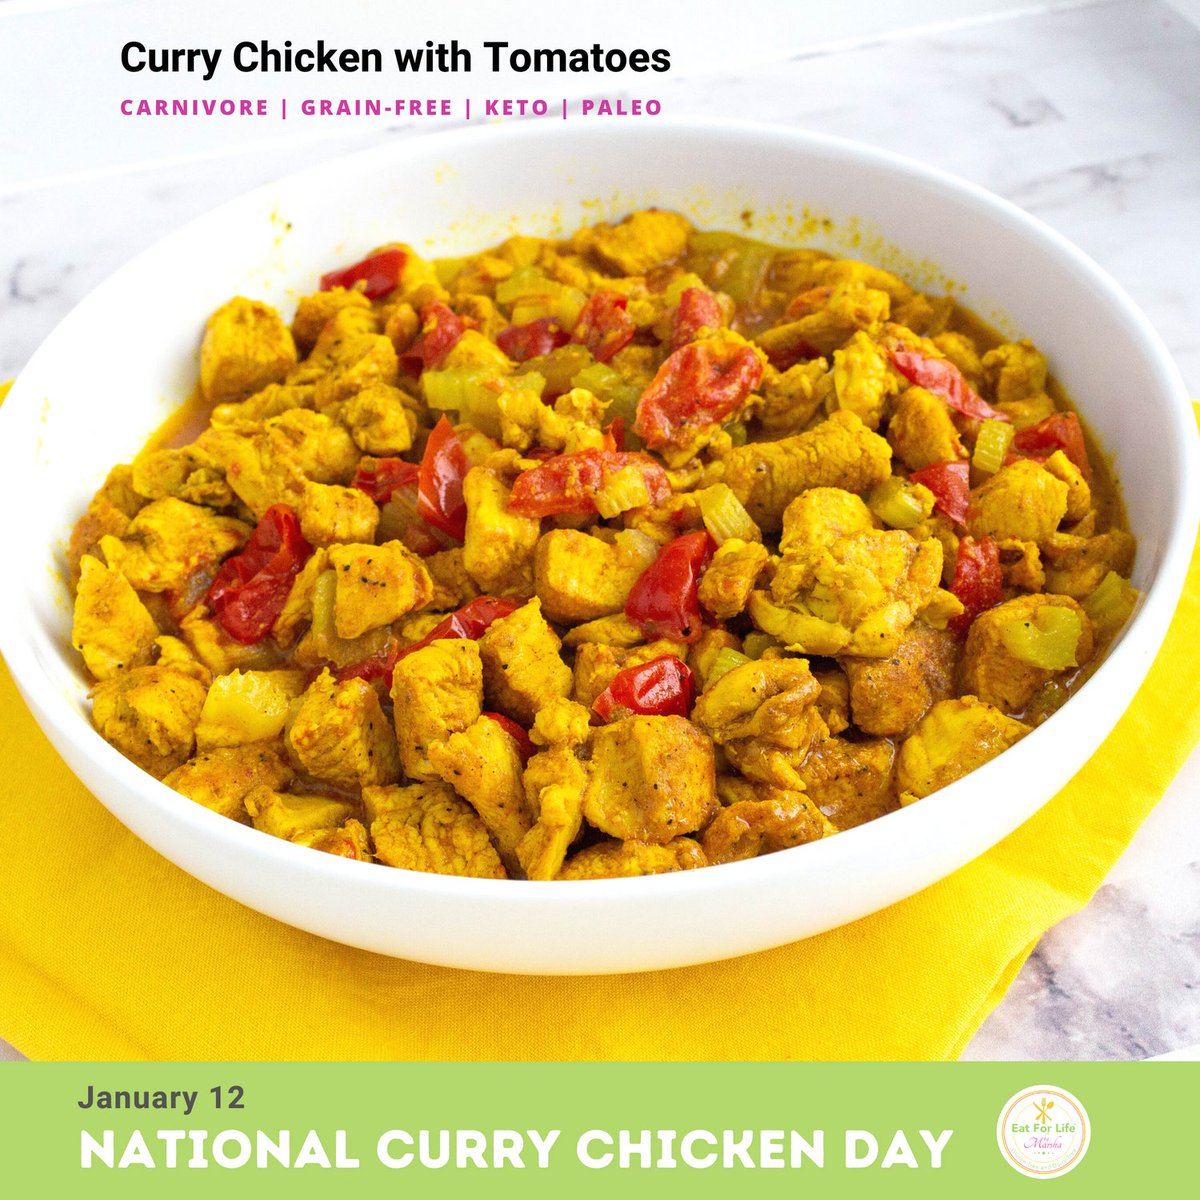 January 12 is National Curry Chicken Day! Serve it with  #vegetables #quinoa #rice #pasta #bread 😊 I had mine with #vermicelli  #nationalcurrychickenday #curry #chicken #currylover #indianfood #caribbeanfood #chickencurry #westindianfood #currynight #keto #paleo #grainfree